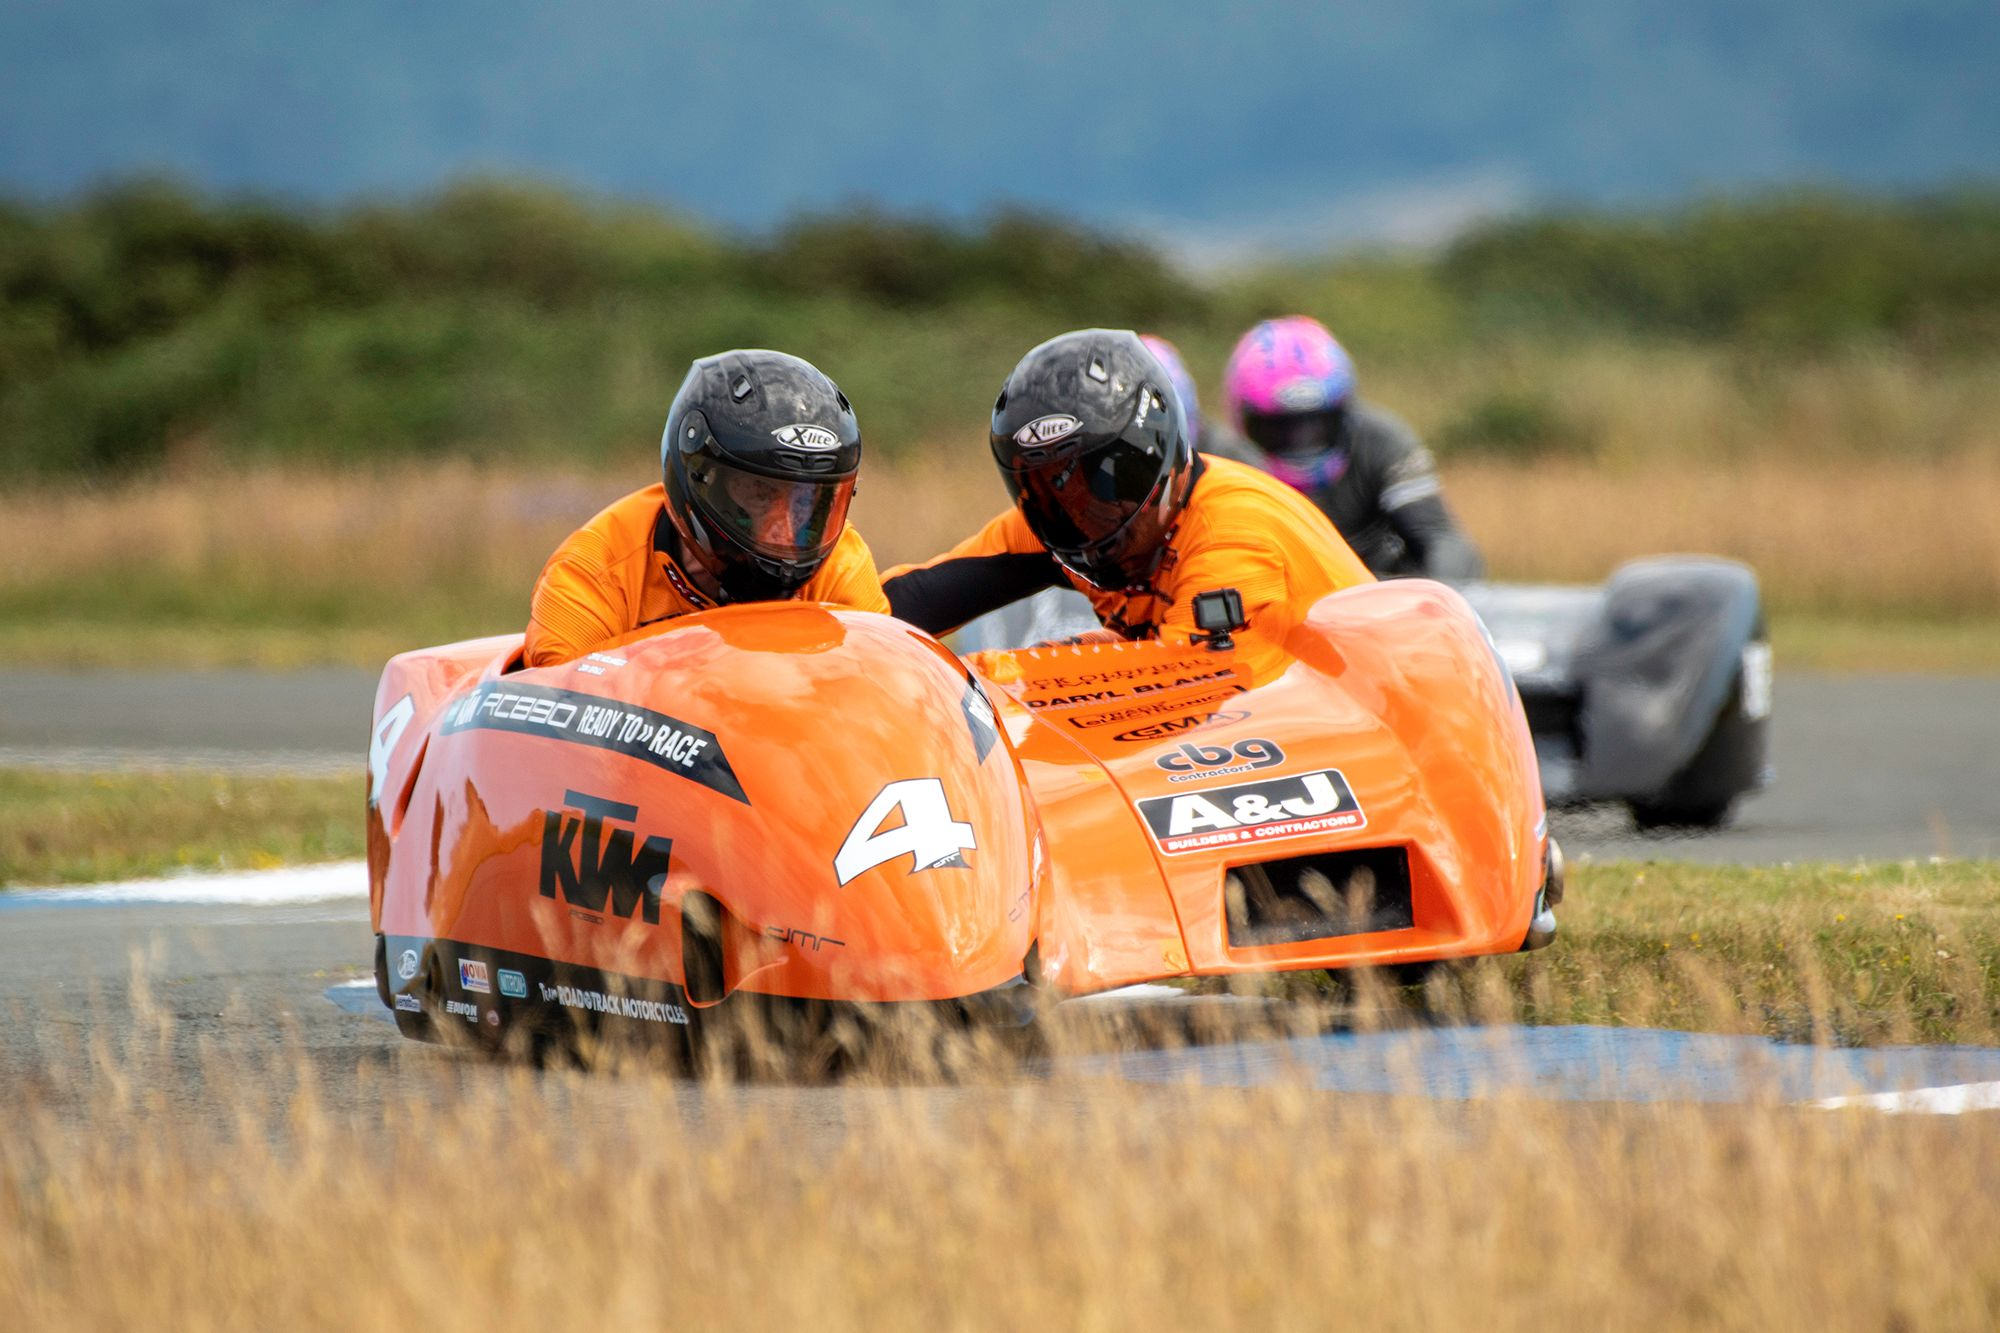 Molyneux/Sayle Give KTM Powered Outfit First Wins